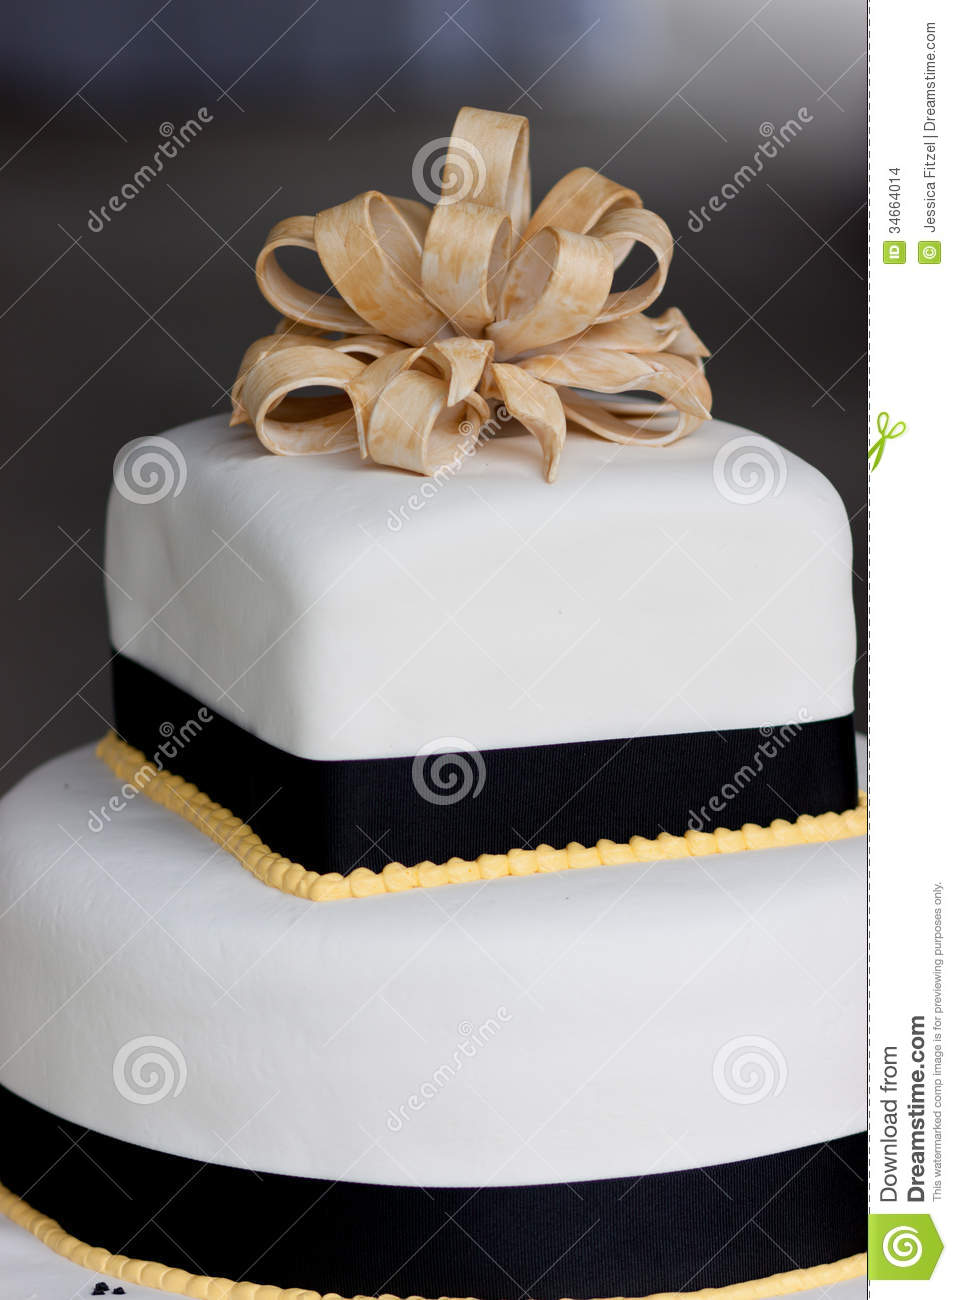 Wedding Cake Stock Photo Image Of Decorated Fondant